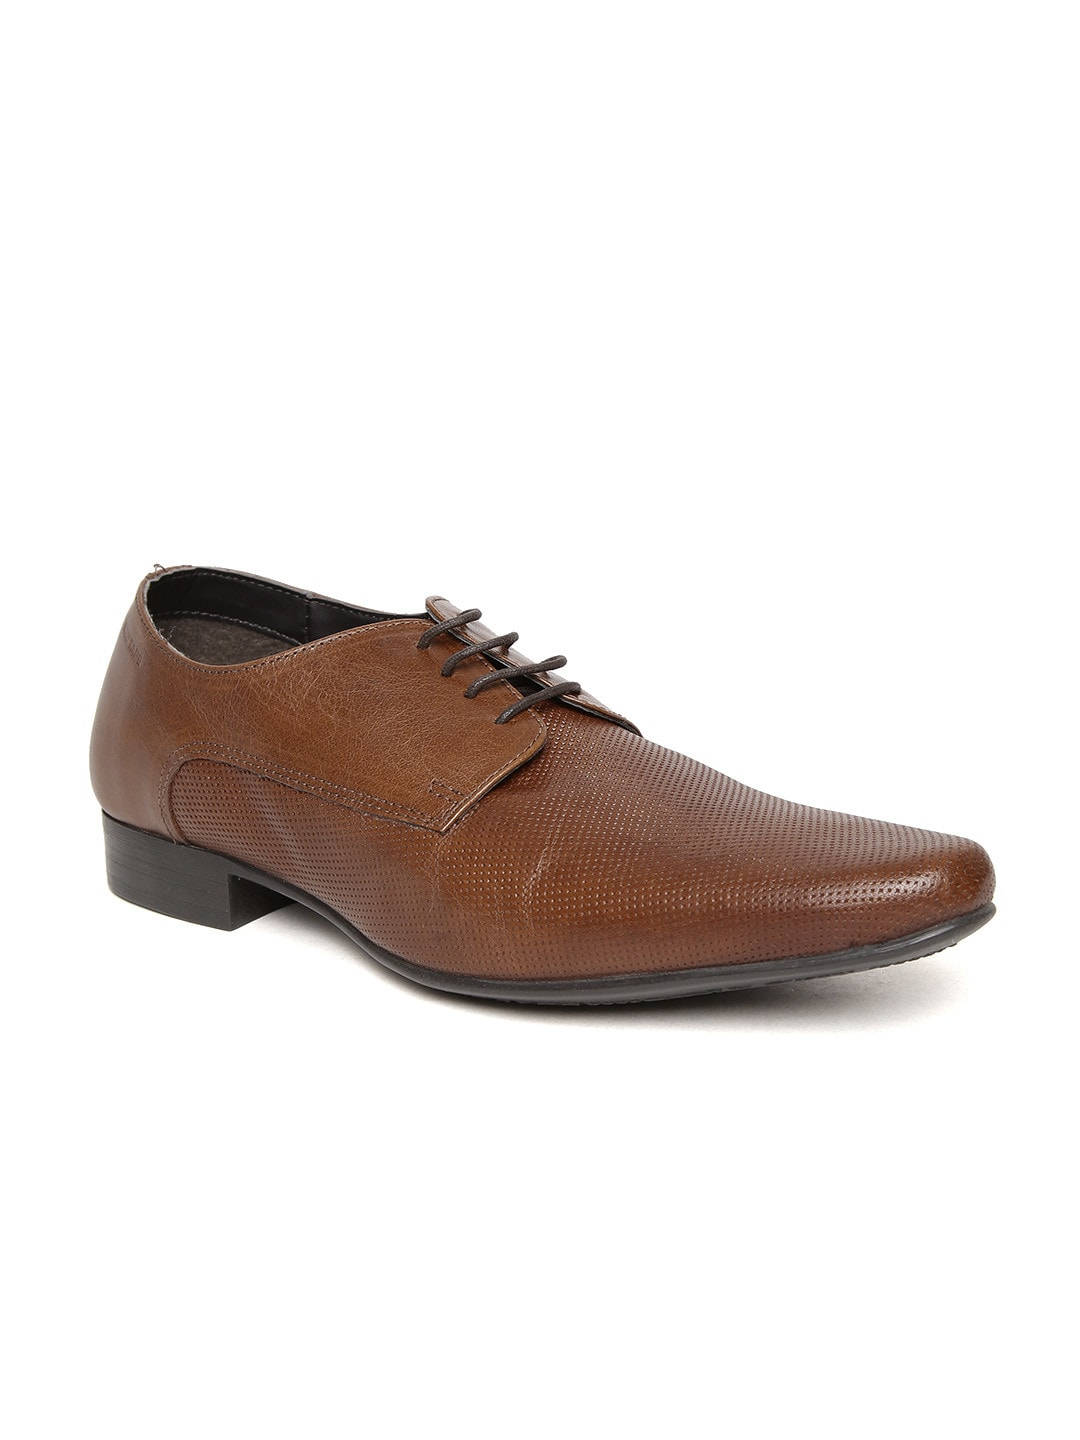 b3f6d3d1fd6 Red Tape Formal Shoe Casual Shoes - Buy Red Tape Formal Shoe Casual Shoes  online in India